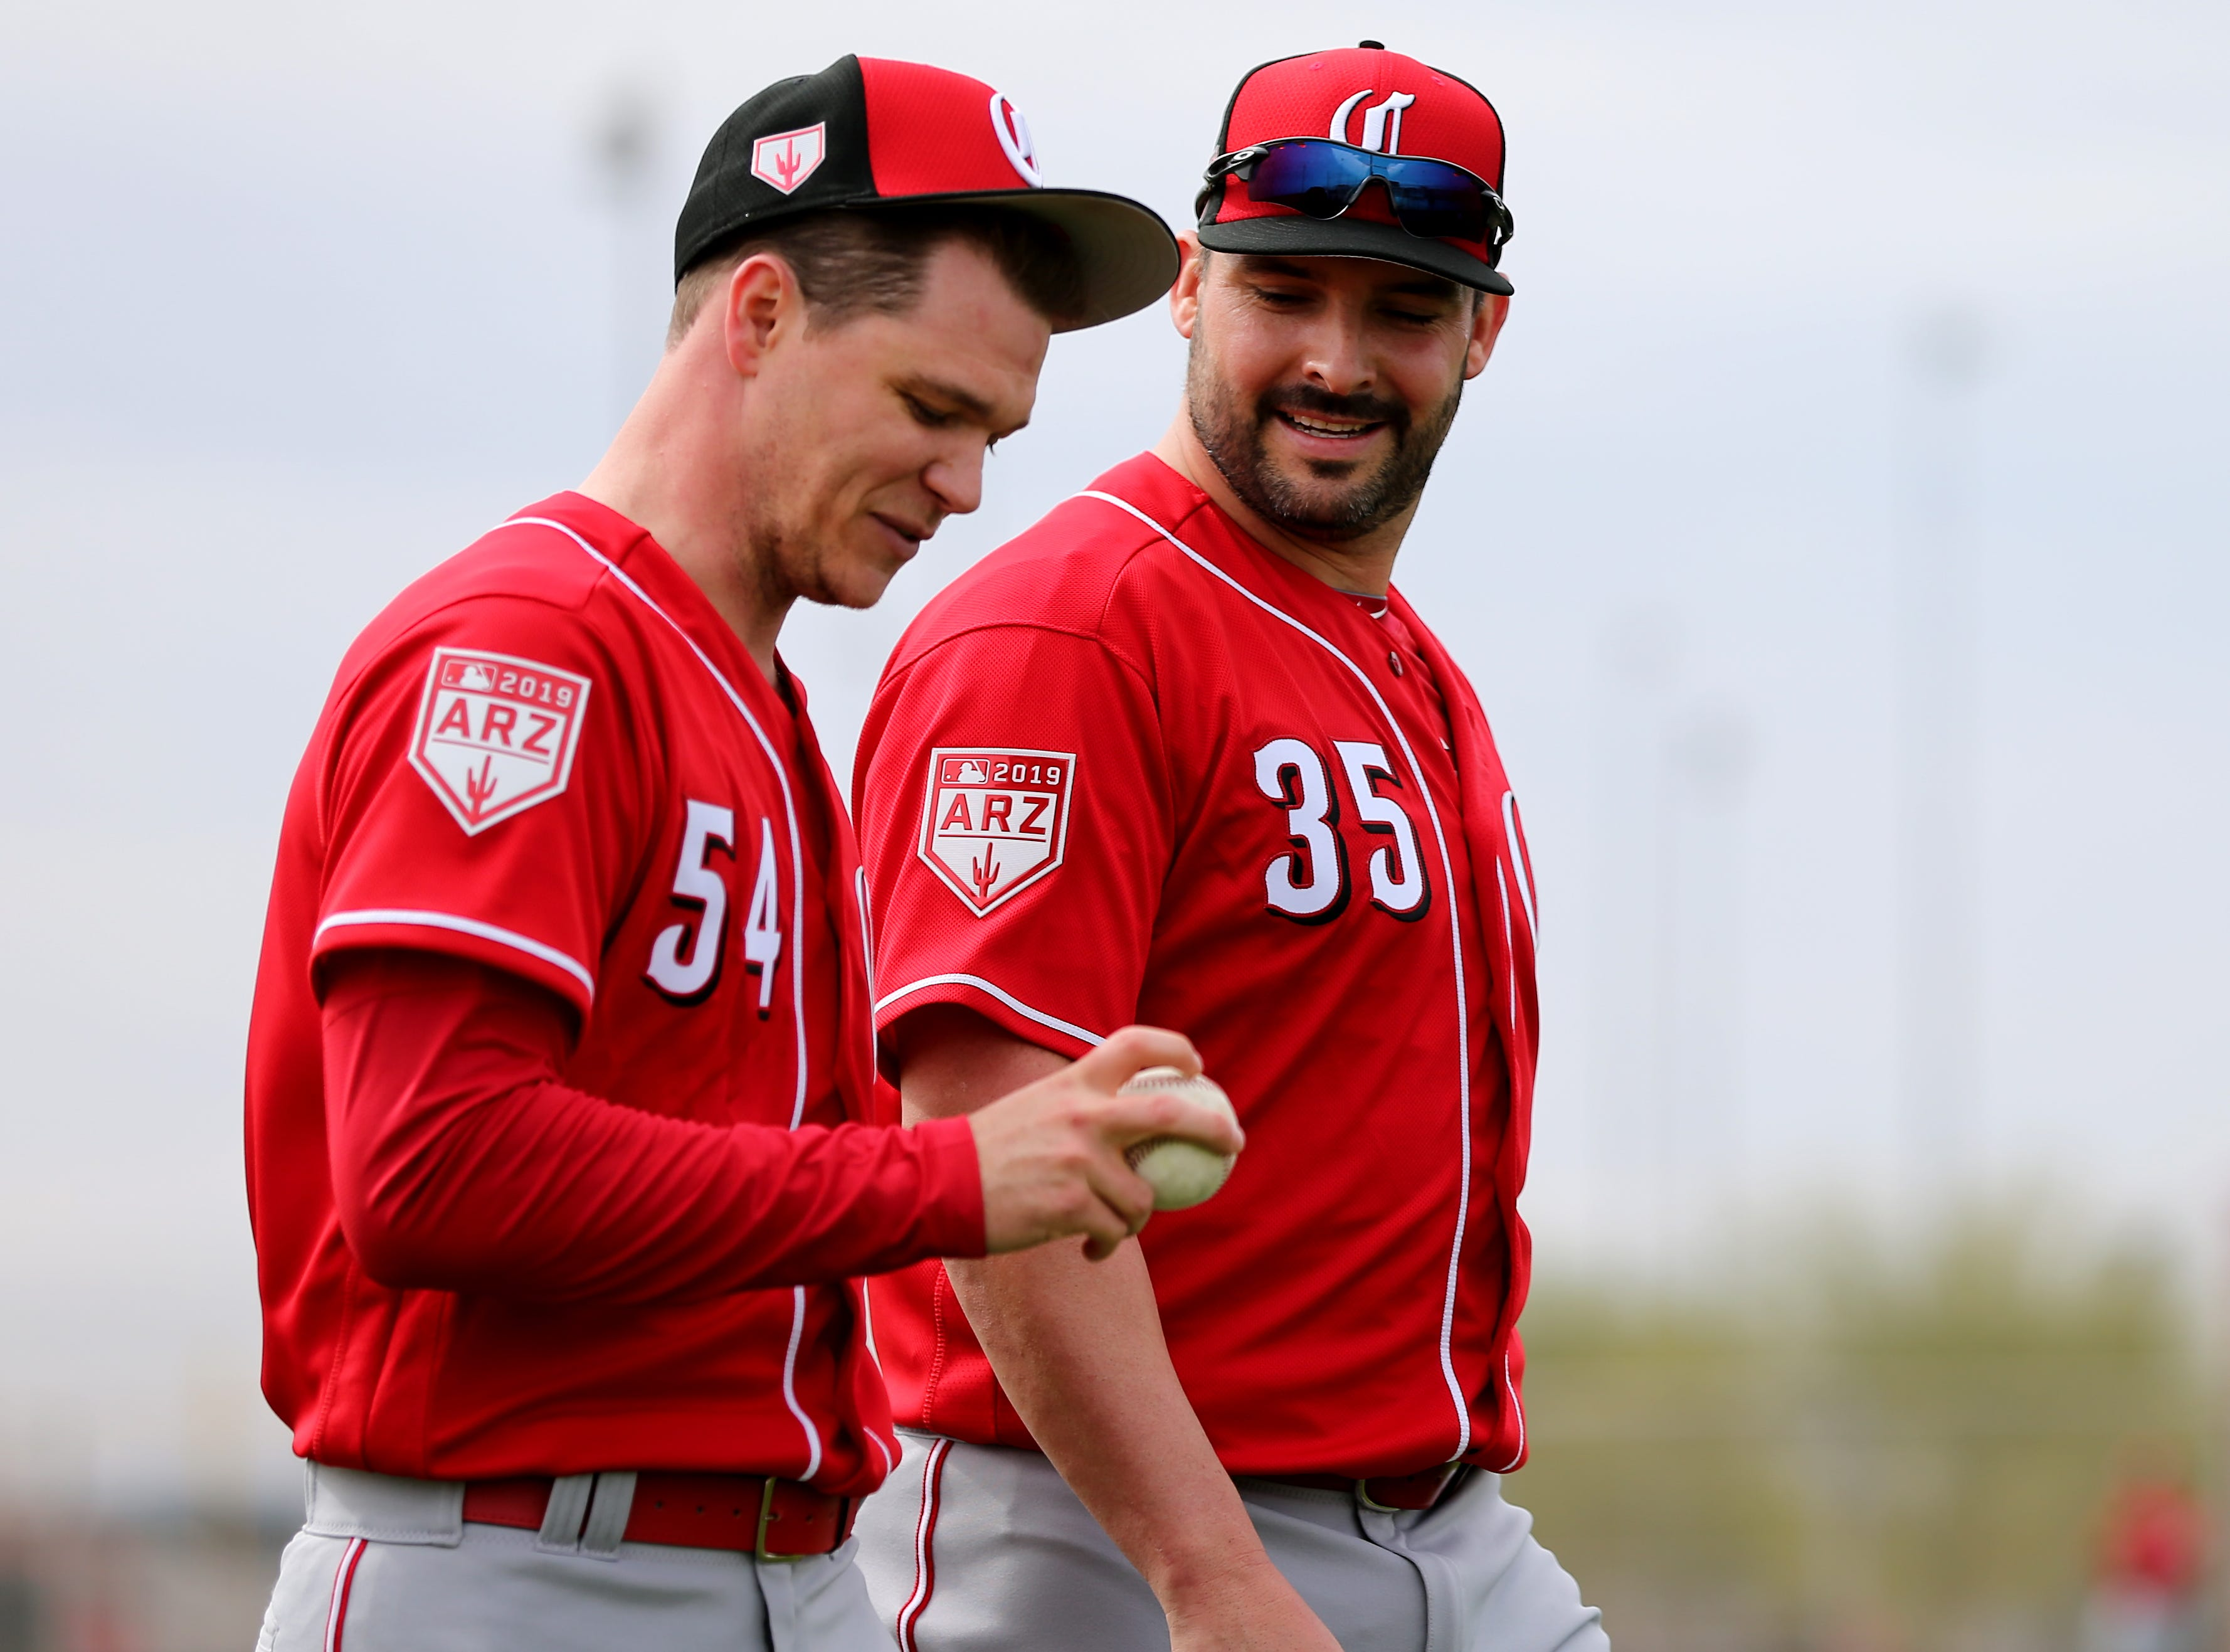 Cincinnati Reds pitchera Sonny Gray (54), left, and Tanner Roark (35), right, walk off the field after long-toss drills, Wednesday, Feb. 13, 2019, at the Cincinnati Reds spring training facility in Goodyear, Arizona.